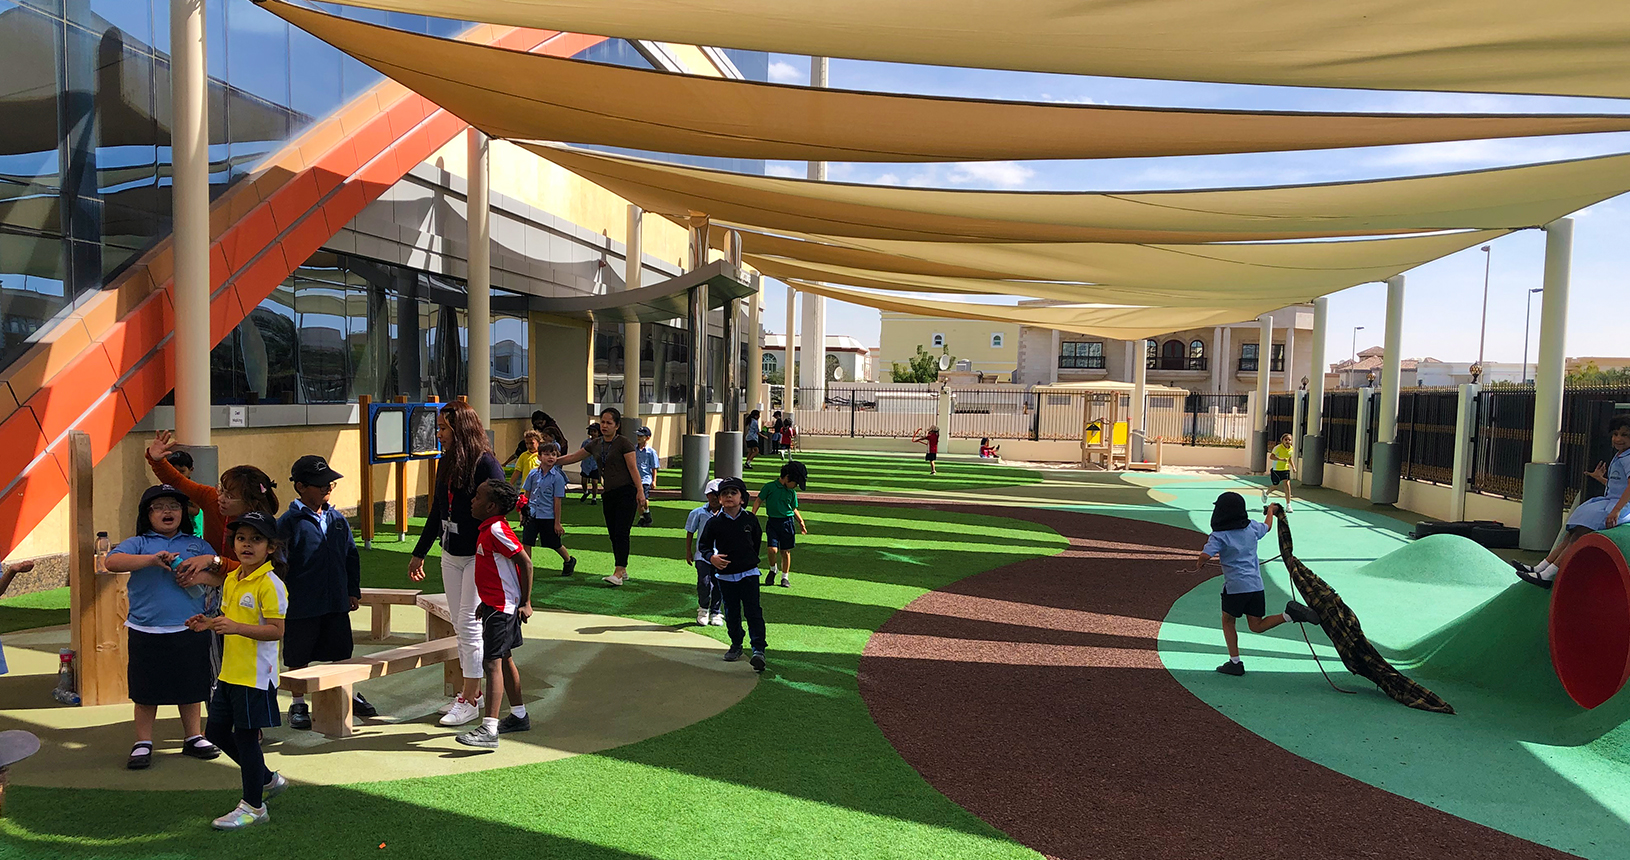 Smart Vision School Primary Designated fully equipped playground